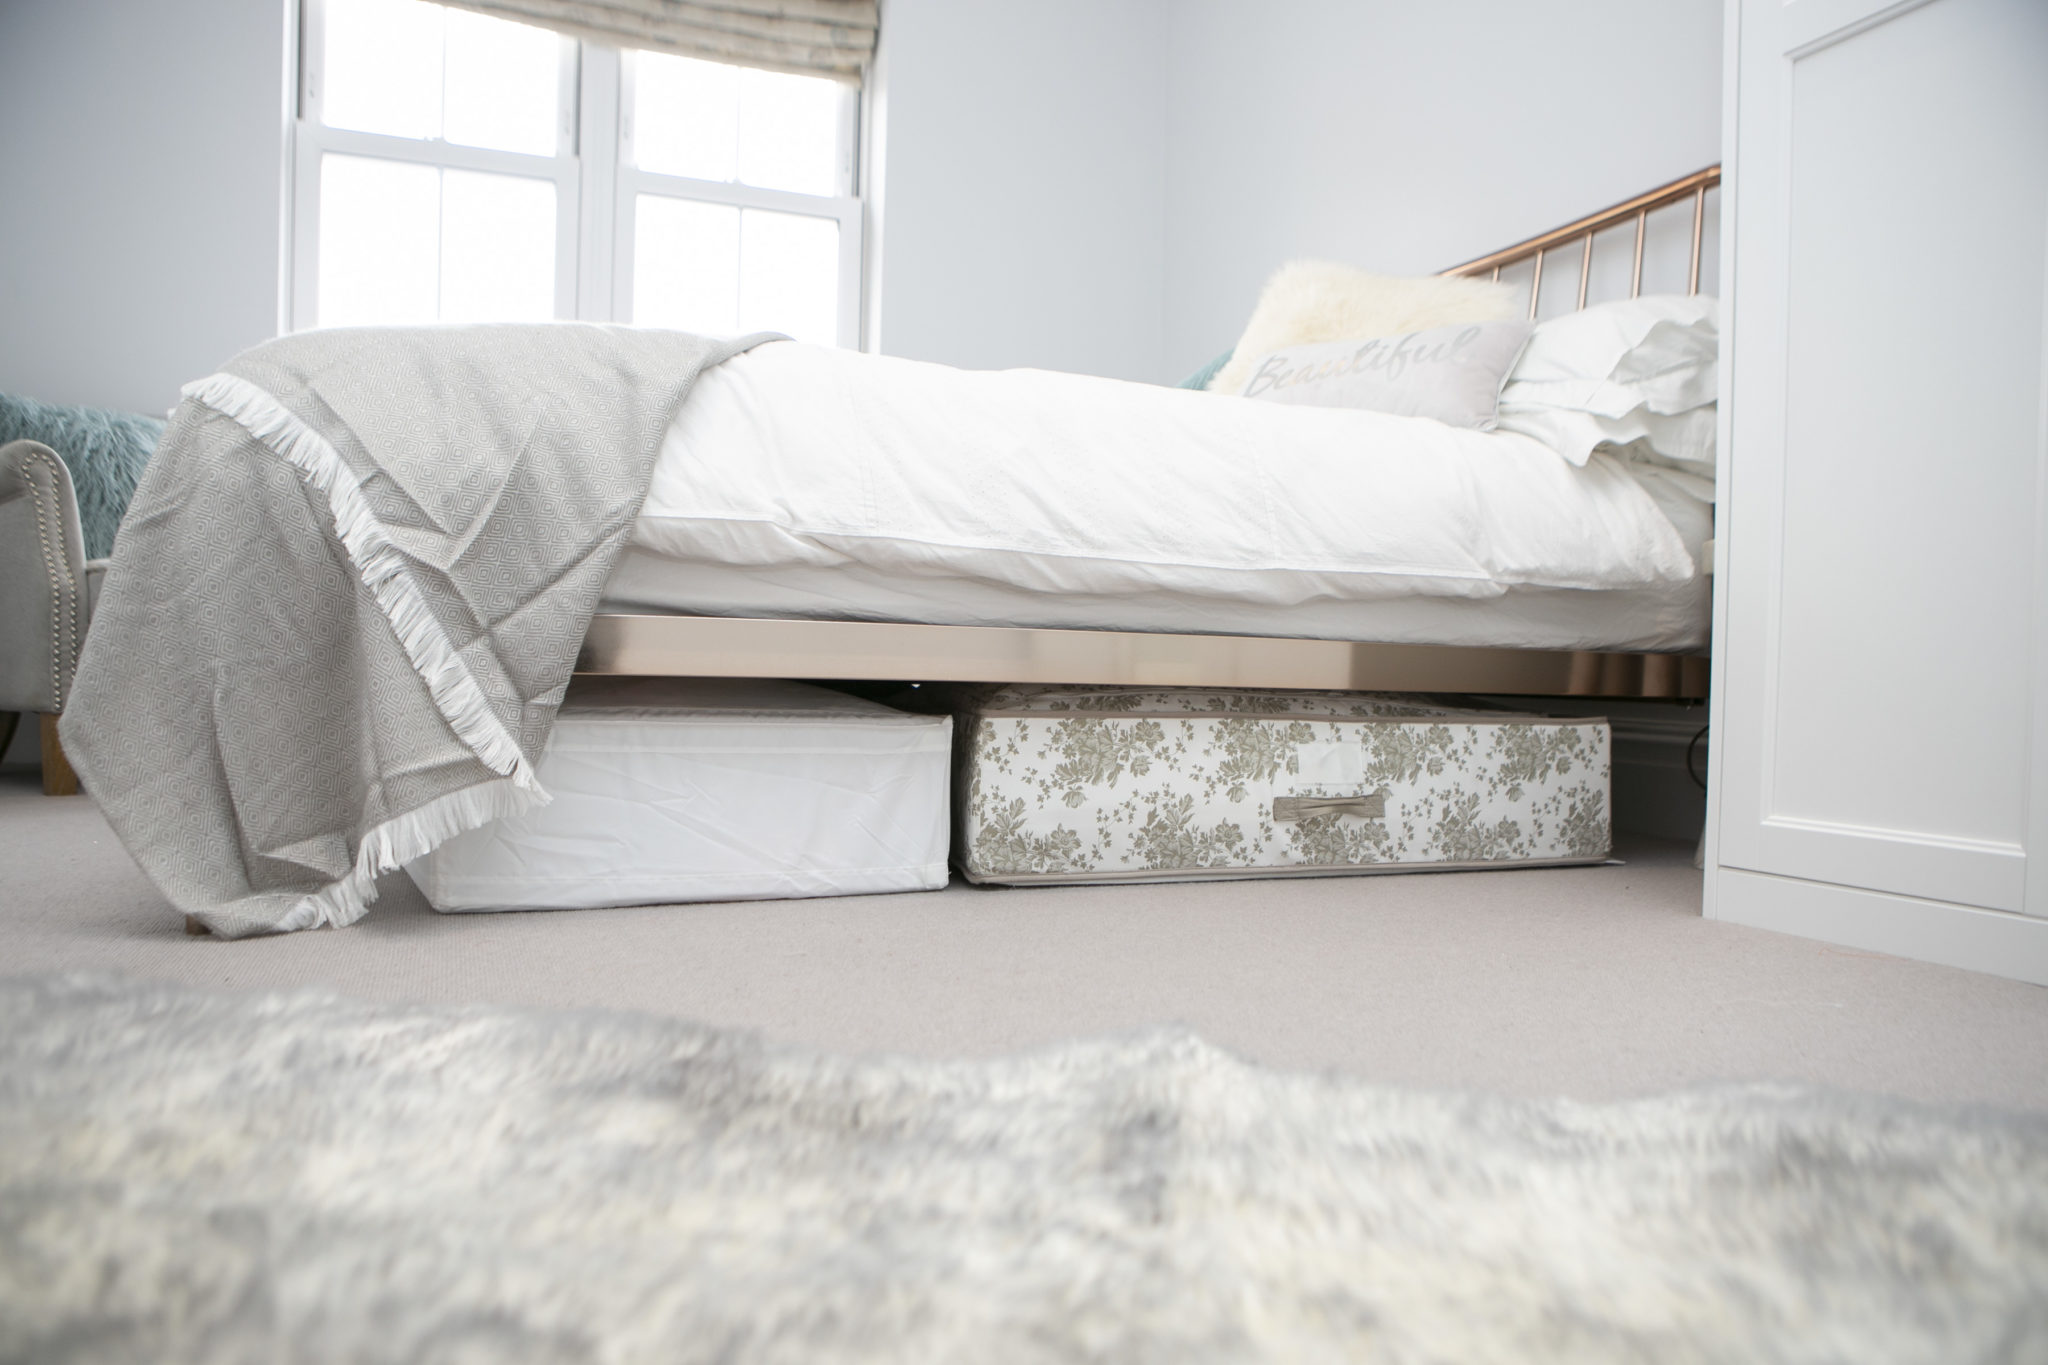 Underbed storage to declutter your home